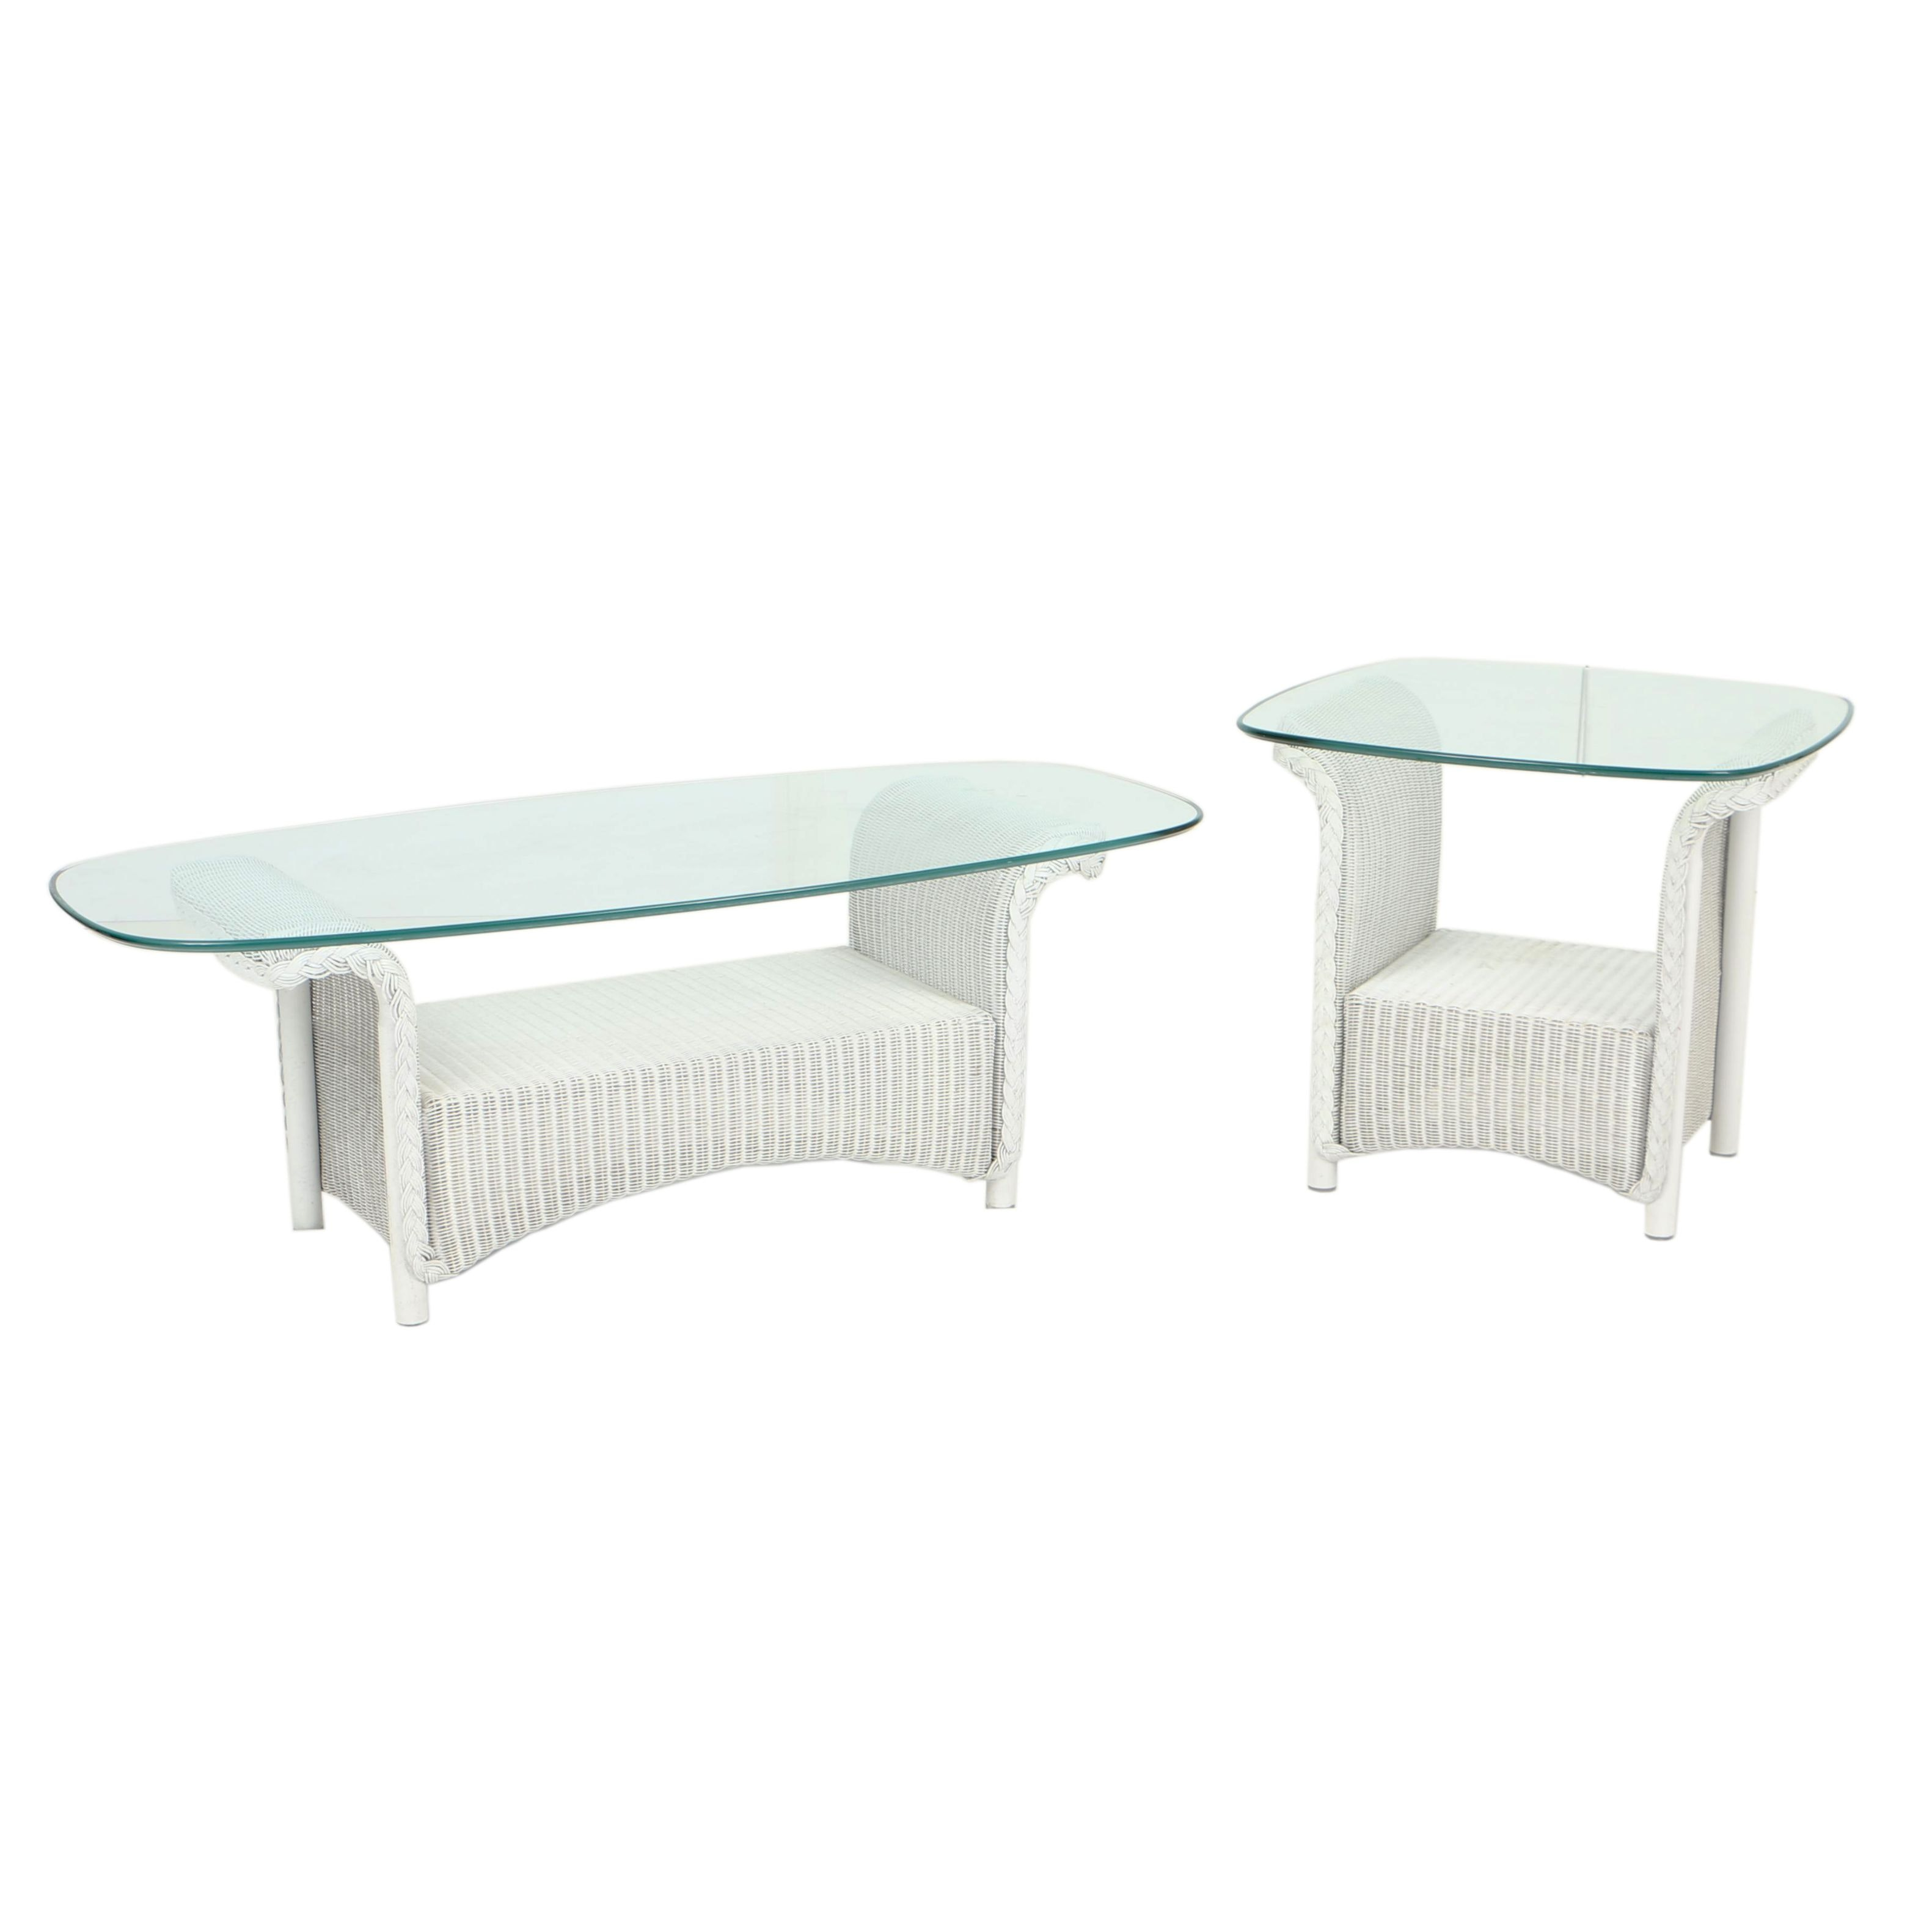 White Wicker Patio Coffee Table and Side Table with Glass Tops